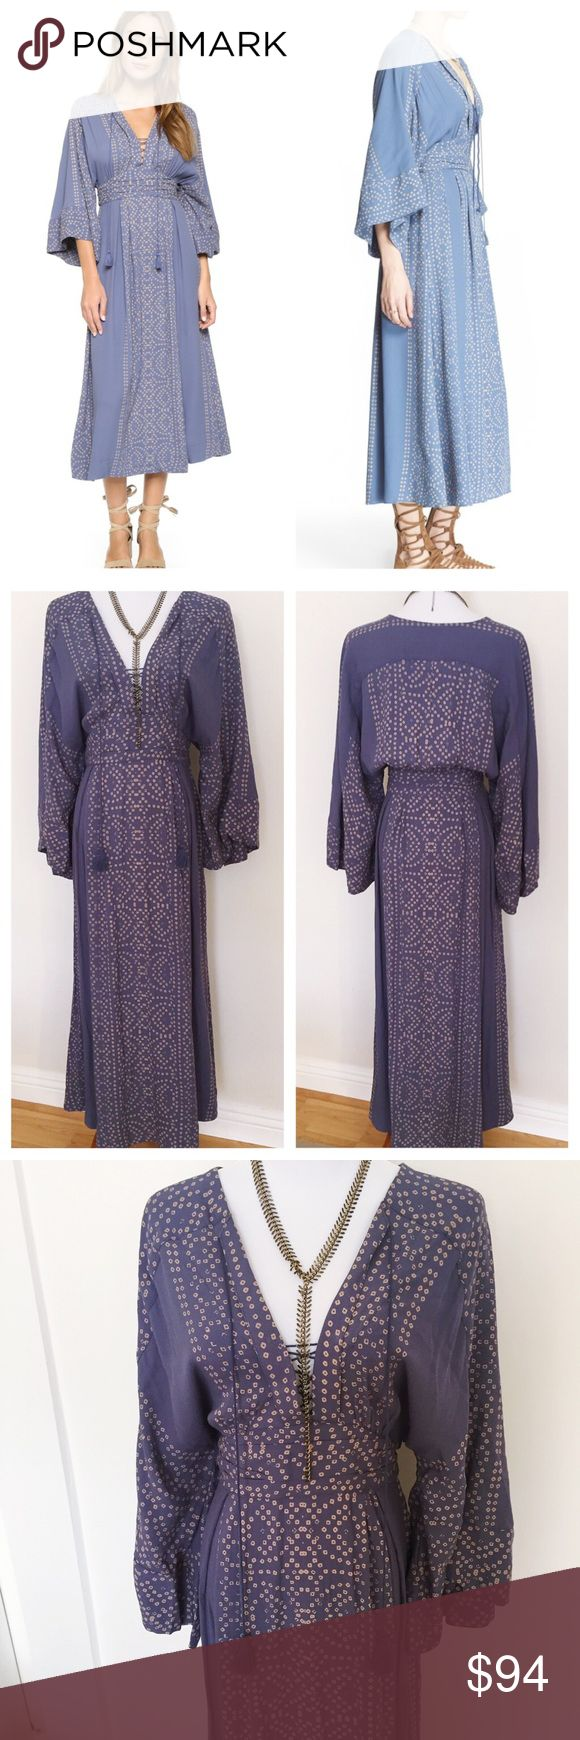 Free People Modern Kimono Maxi dress dusty grey 8 NWT no flaws.  Color is called dusty grey but it's more a grey blue color.  Called a maxi but it's more midi length. There is a little separation at the seam at the top of the zip which I will fix before shipping.  🚫 modeling request, 🚫 trades and 🚫 🅿️🅿️. Reasonable offers welcome! Free People Dresses Midi